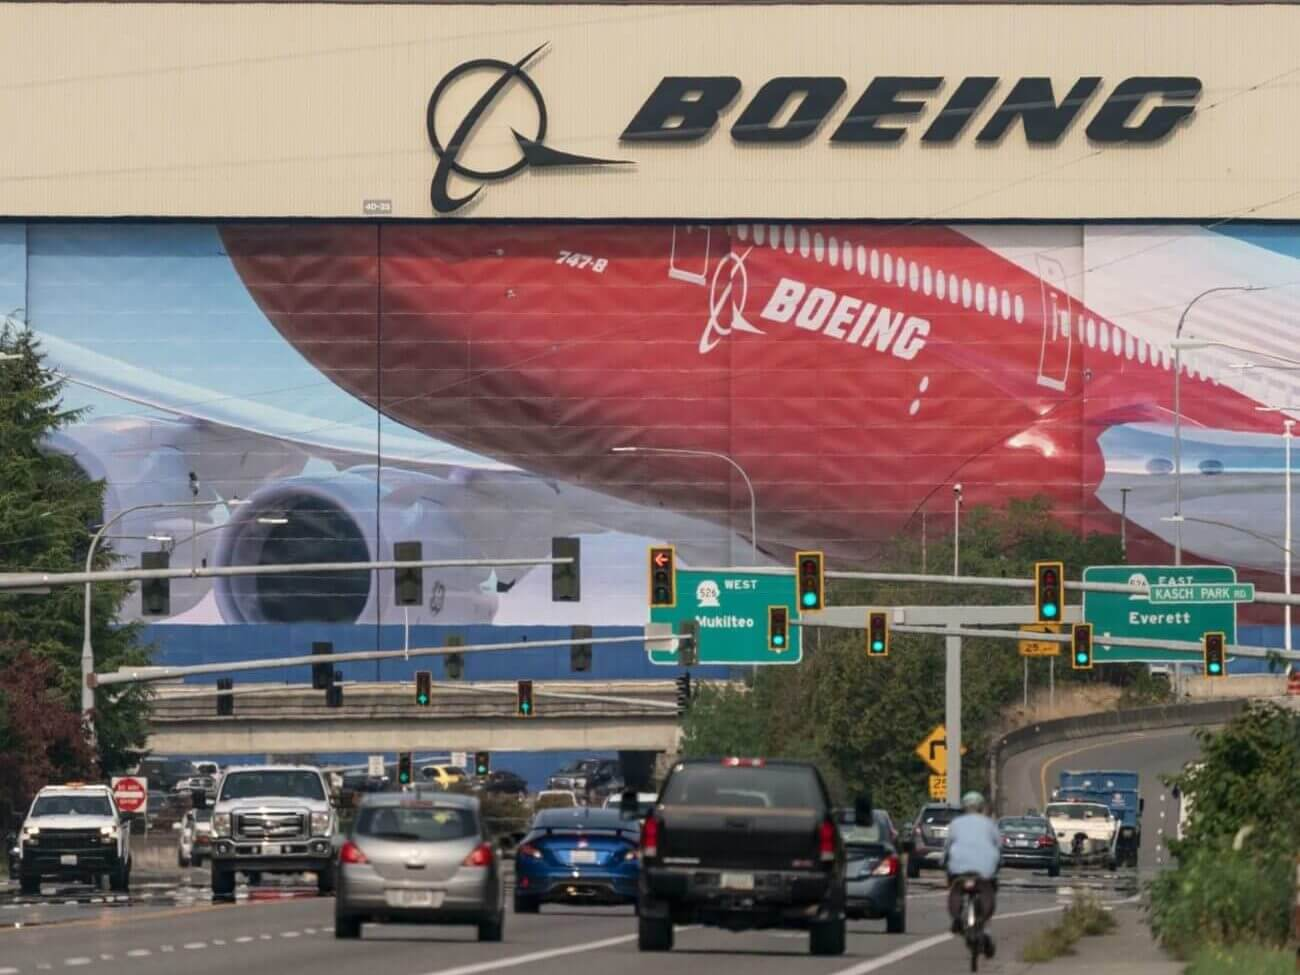 Boeing Is the Latest Firm to Spoil out a Antagonistic Industry Ambiance